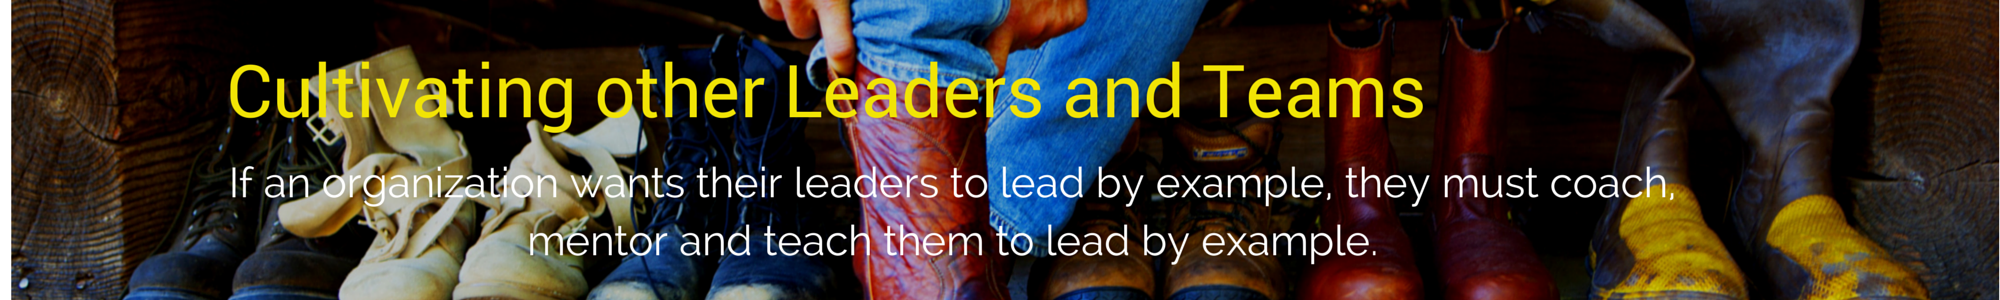 5.Cultivating Leaders - Boots